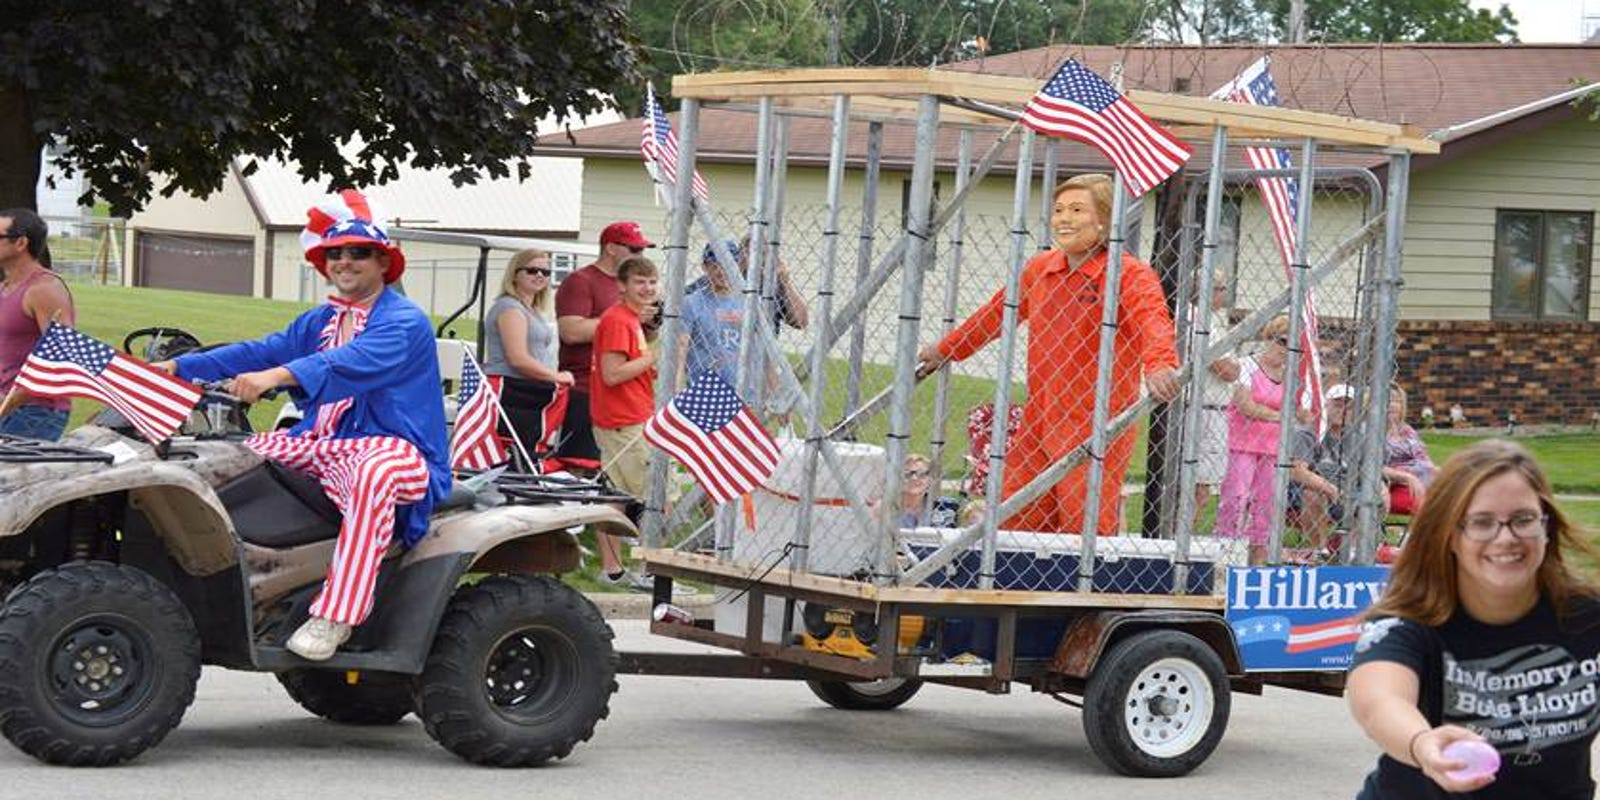 Rezultate imazhesh për Iowa parade float depicts Hillary Clinton behind bars